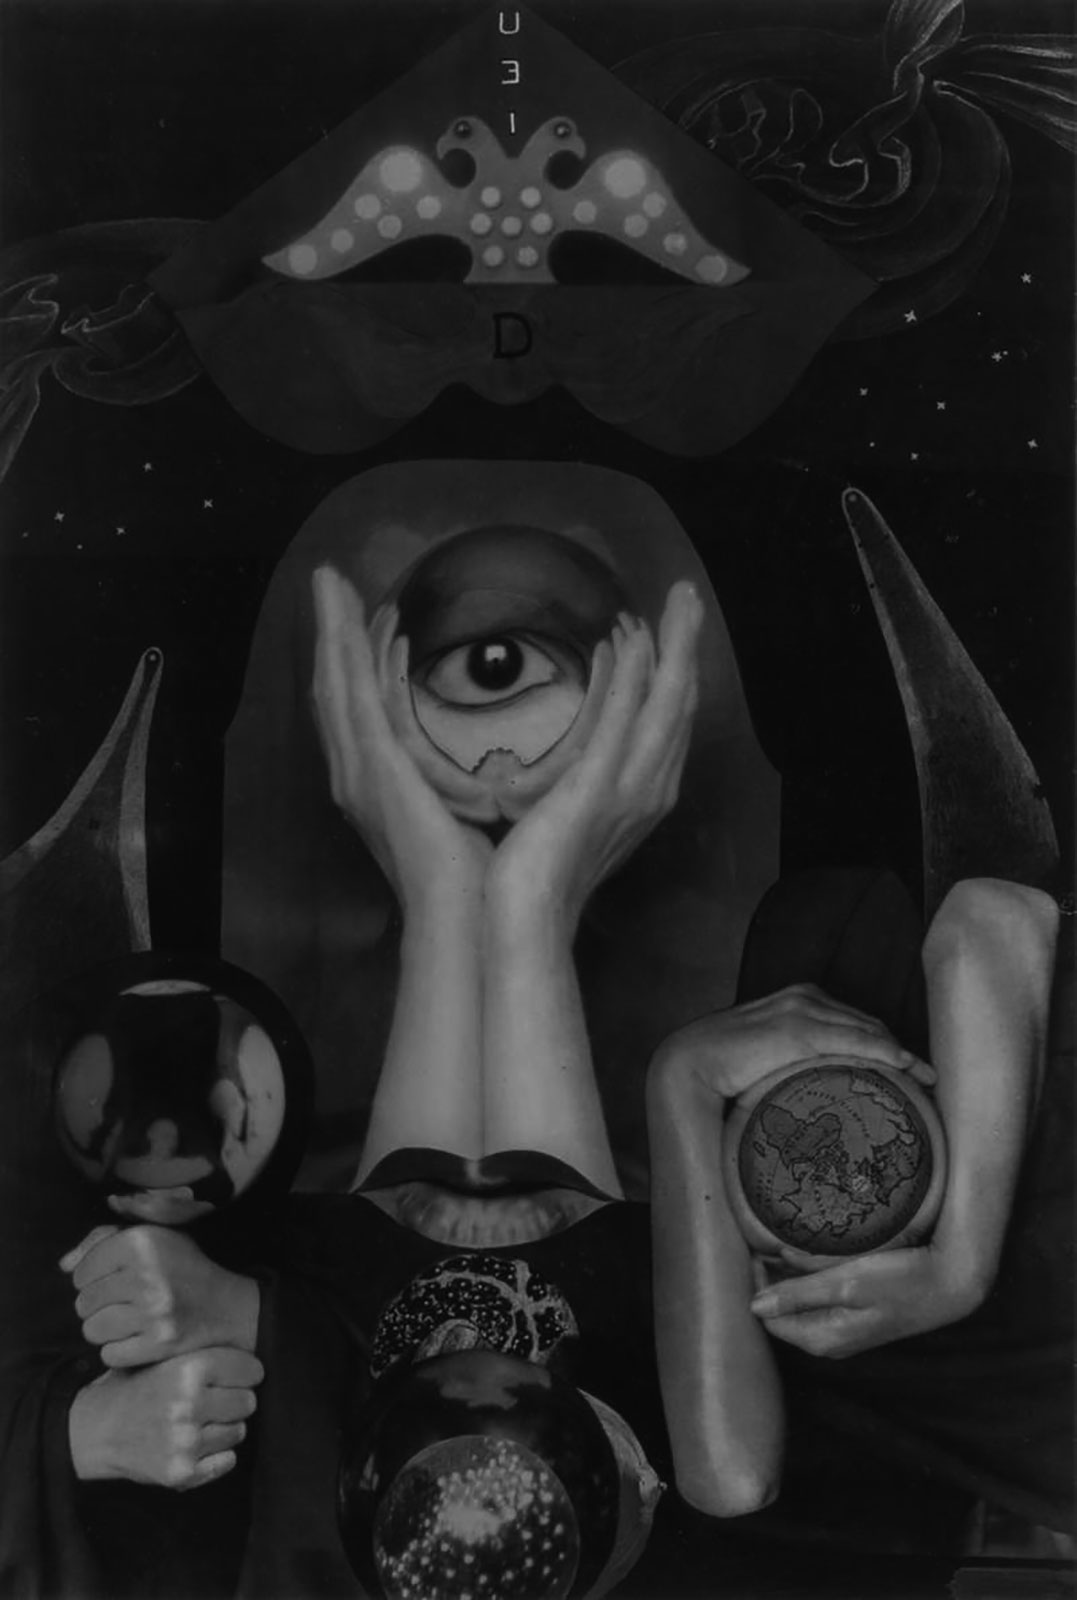 Collage de l'artiste Claude Cahun